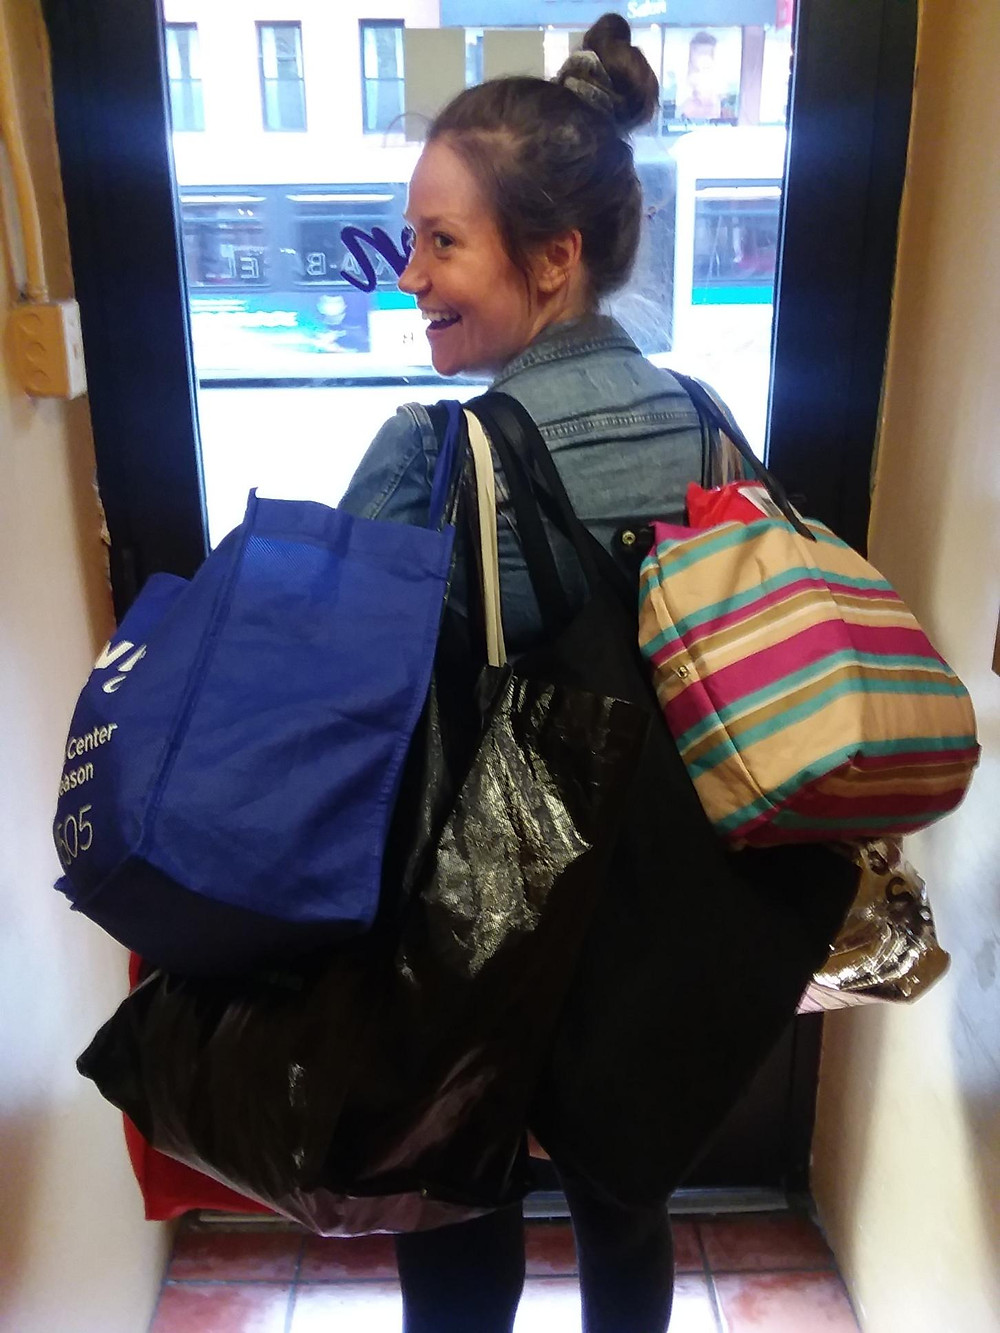 Jackie carrying several bags.